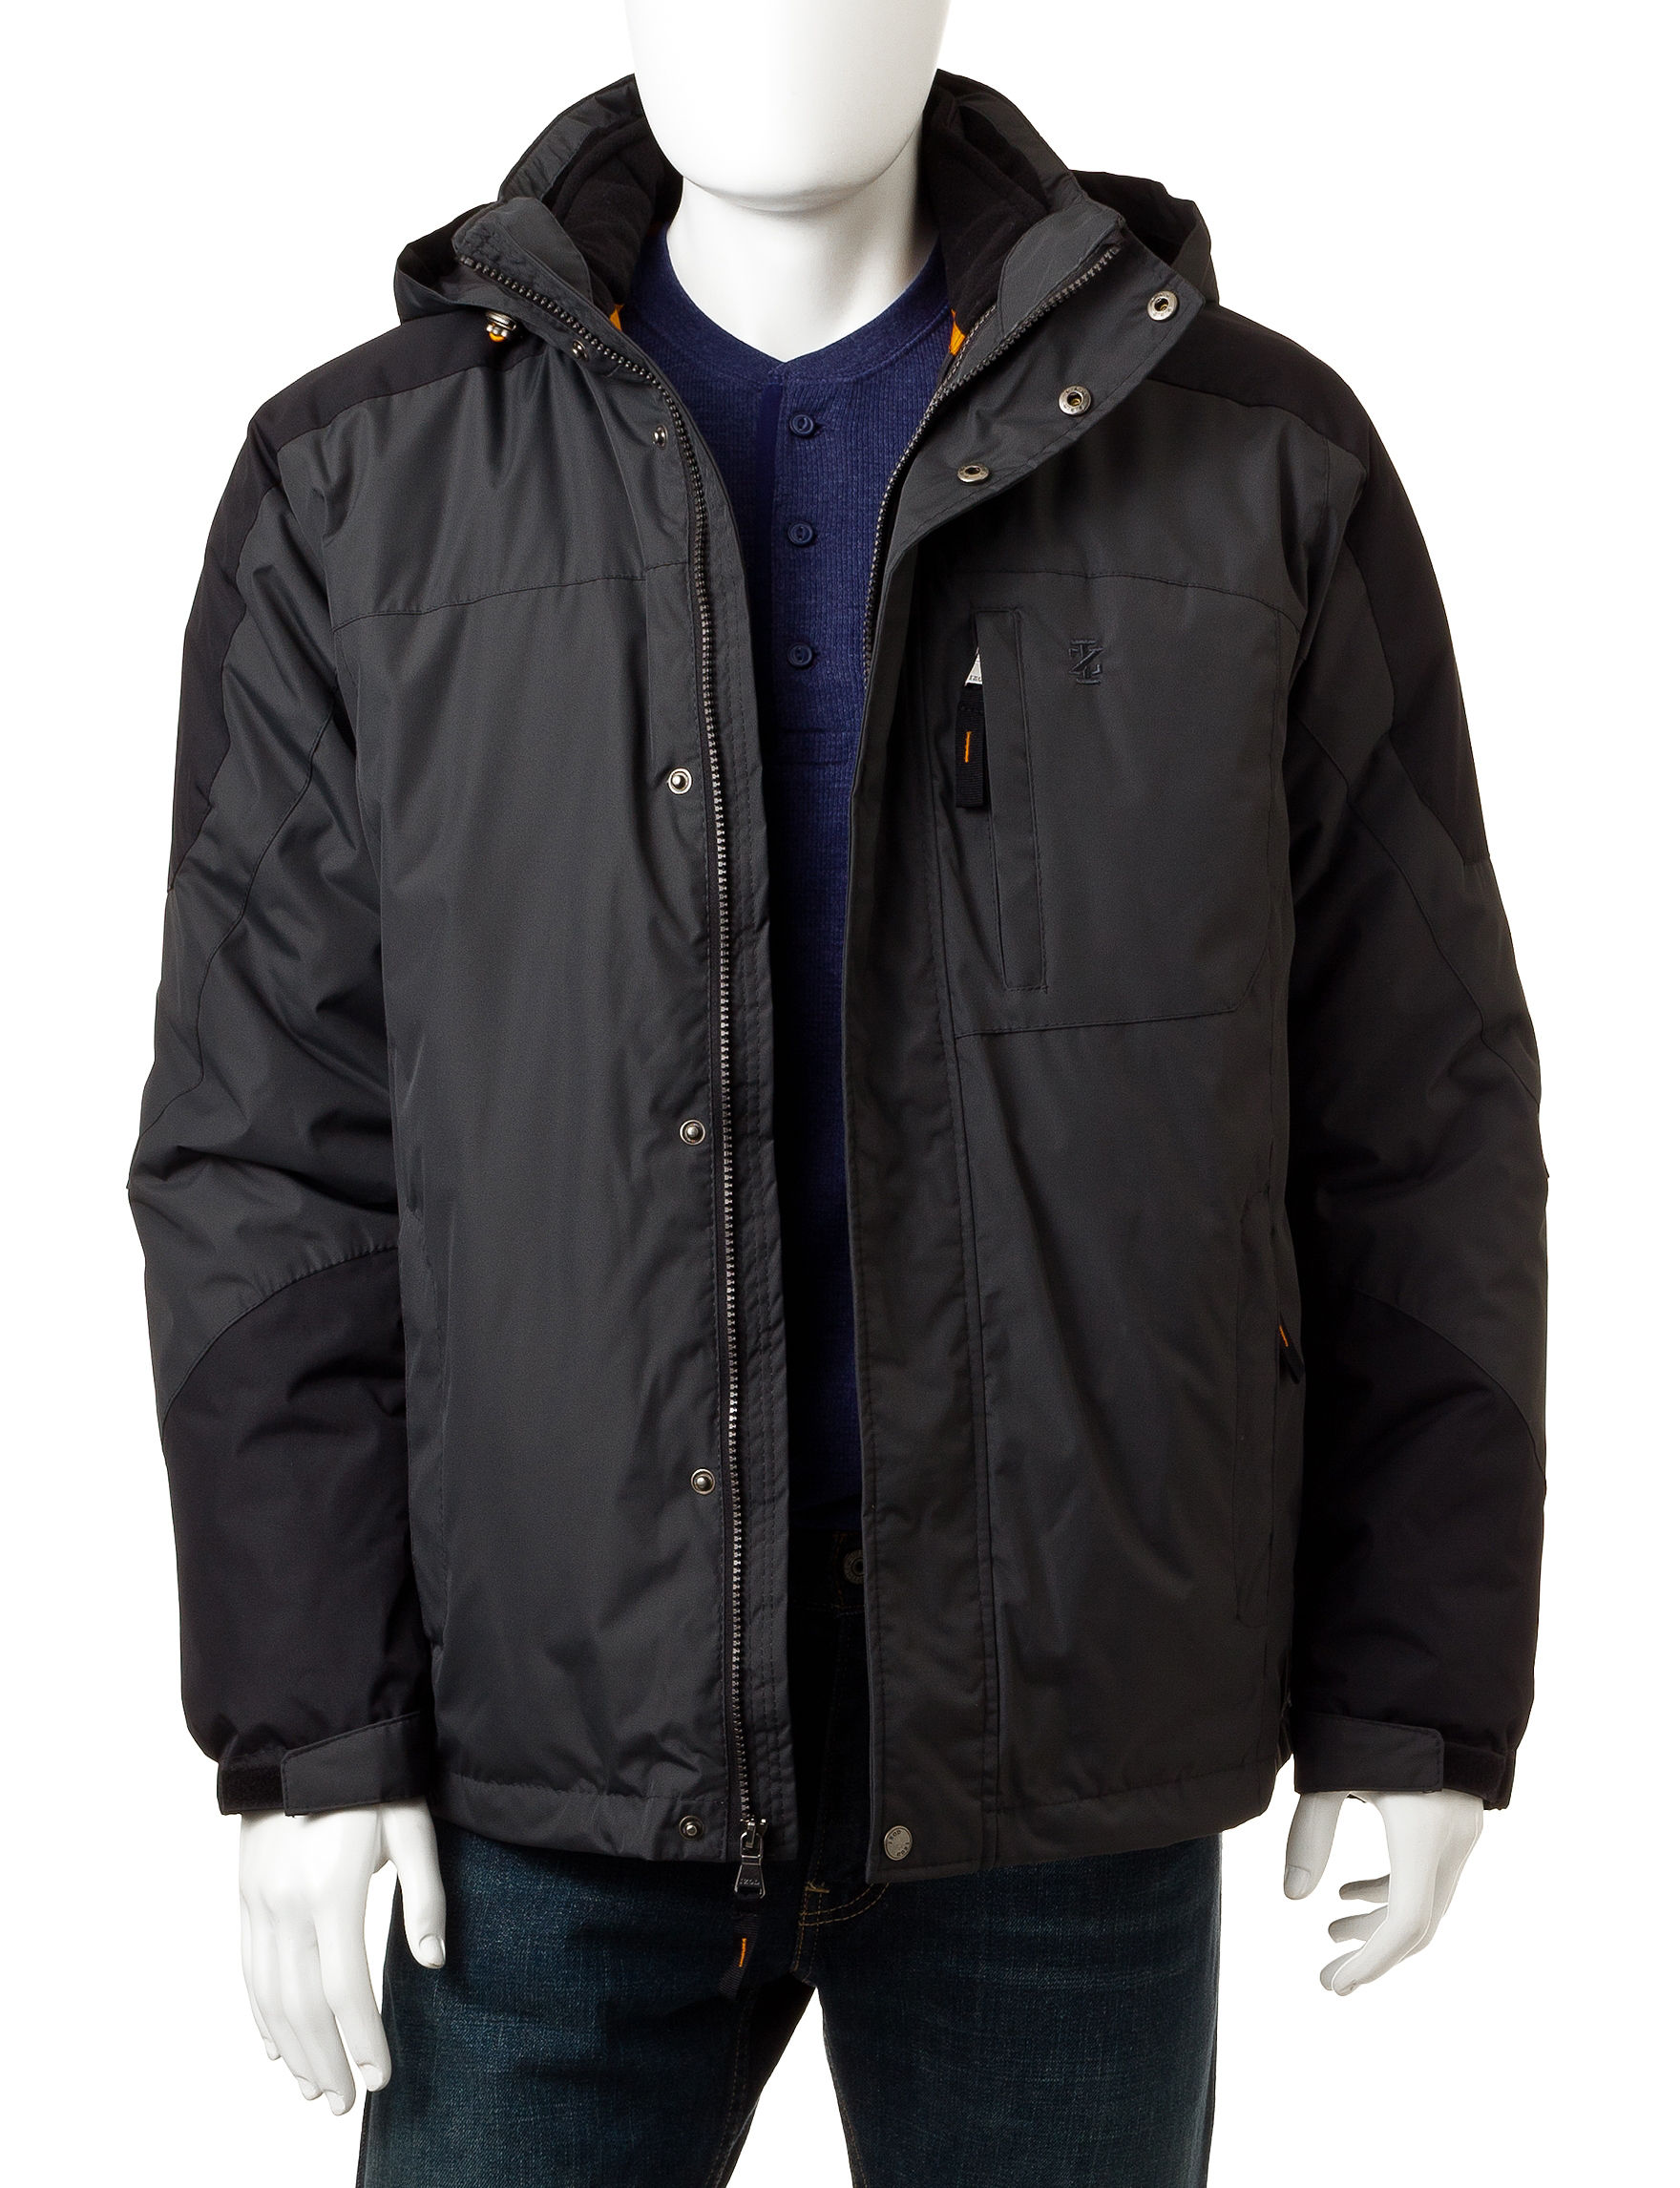 Izod Black / Dark Grey Insulated Jackets